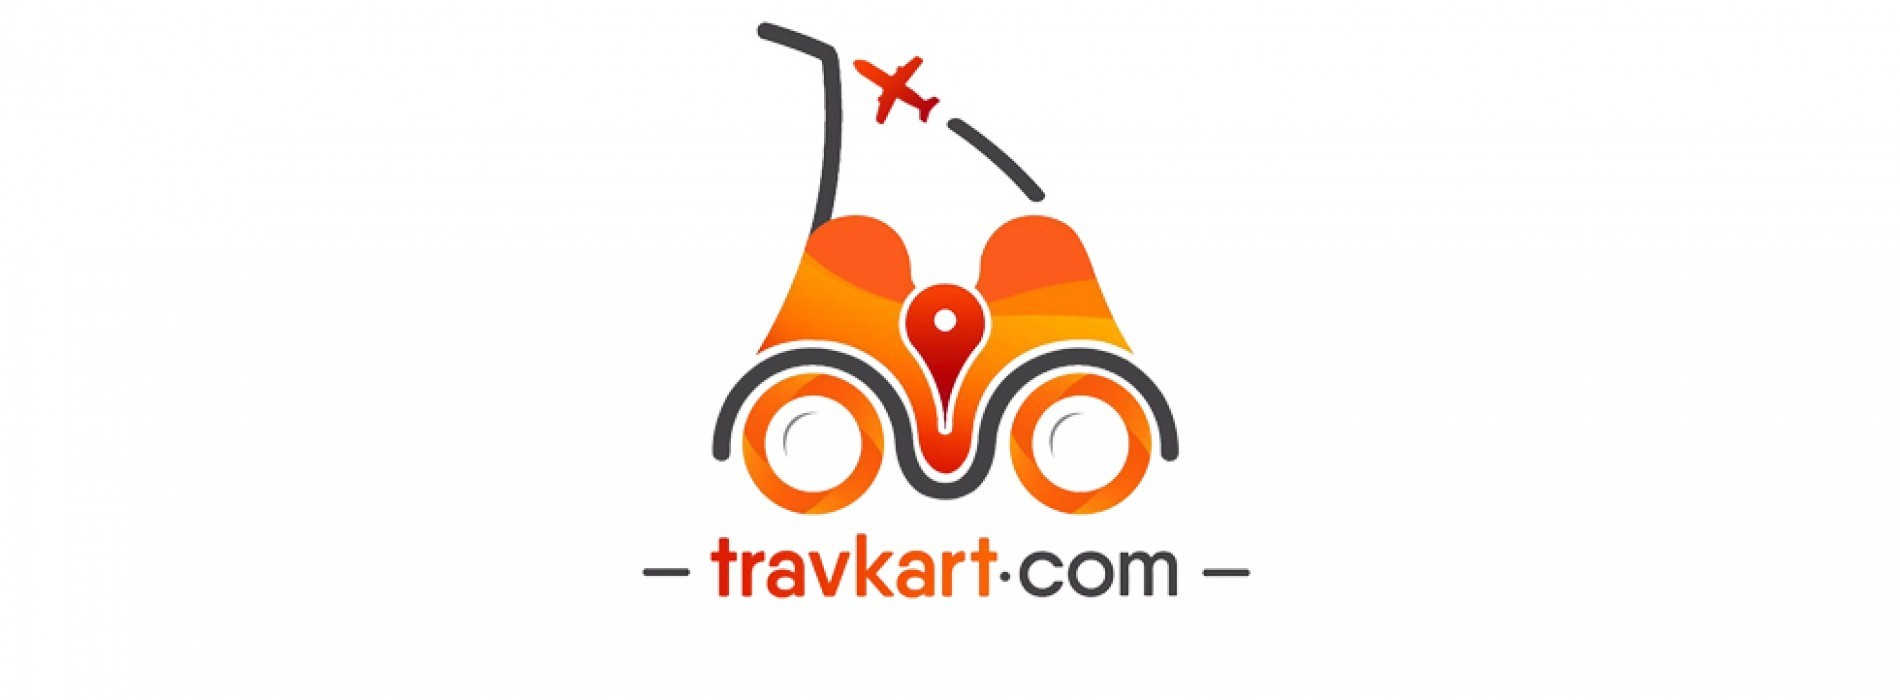 Travkart announces launch of franchisee outlet in Kamla Nagar